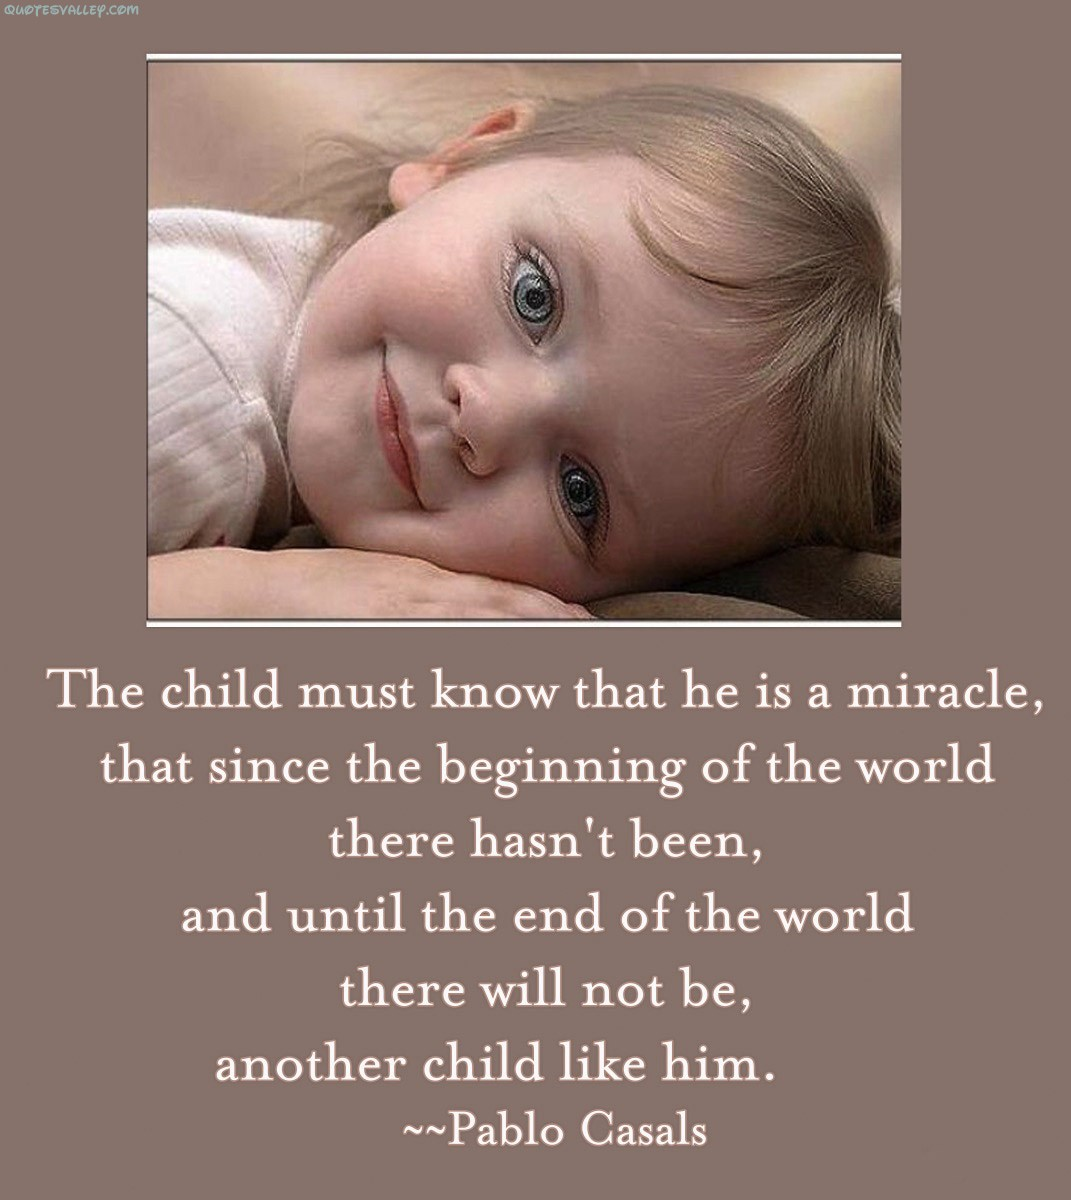 The Child Must Know That He Is A Miracle, That Since The Beginning Of The World There Hasn't Been.. Pablo Casals